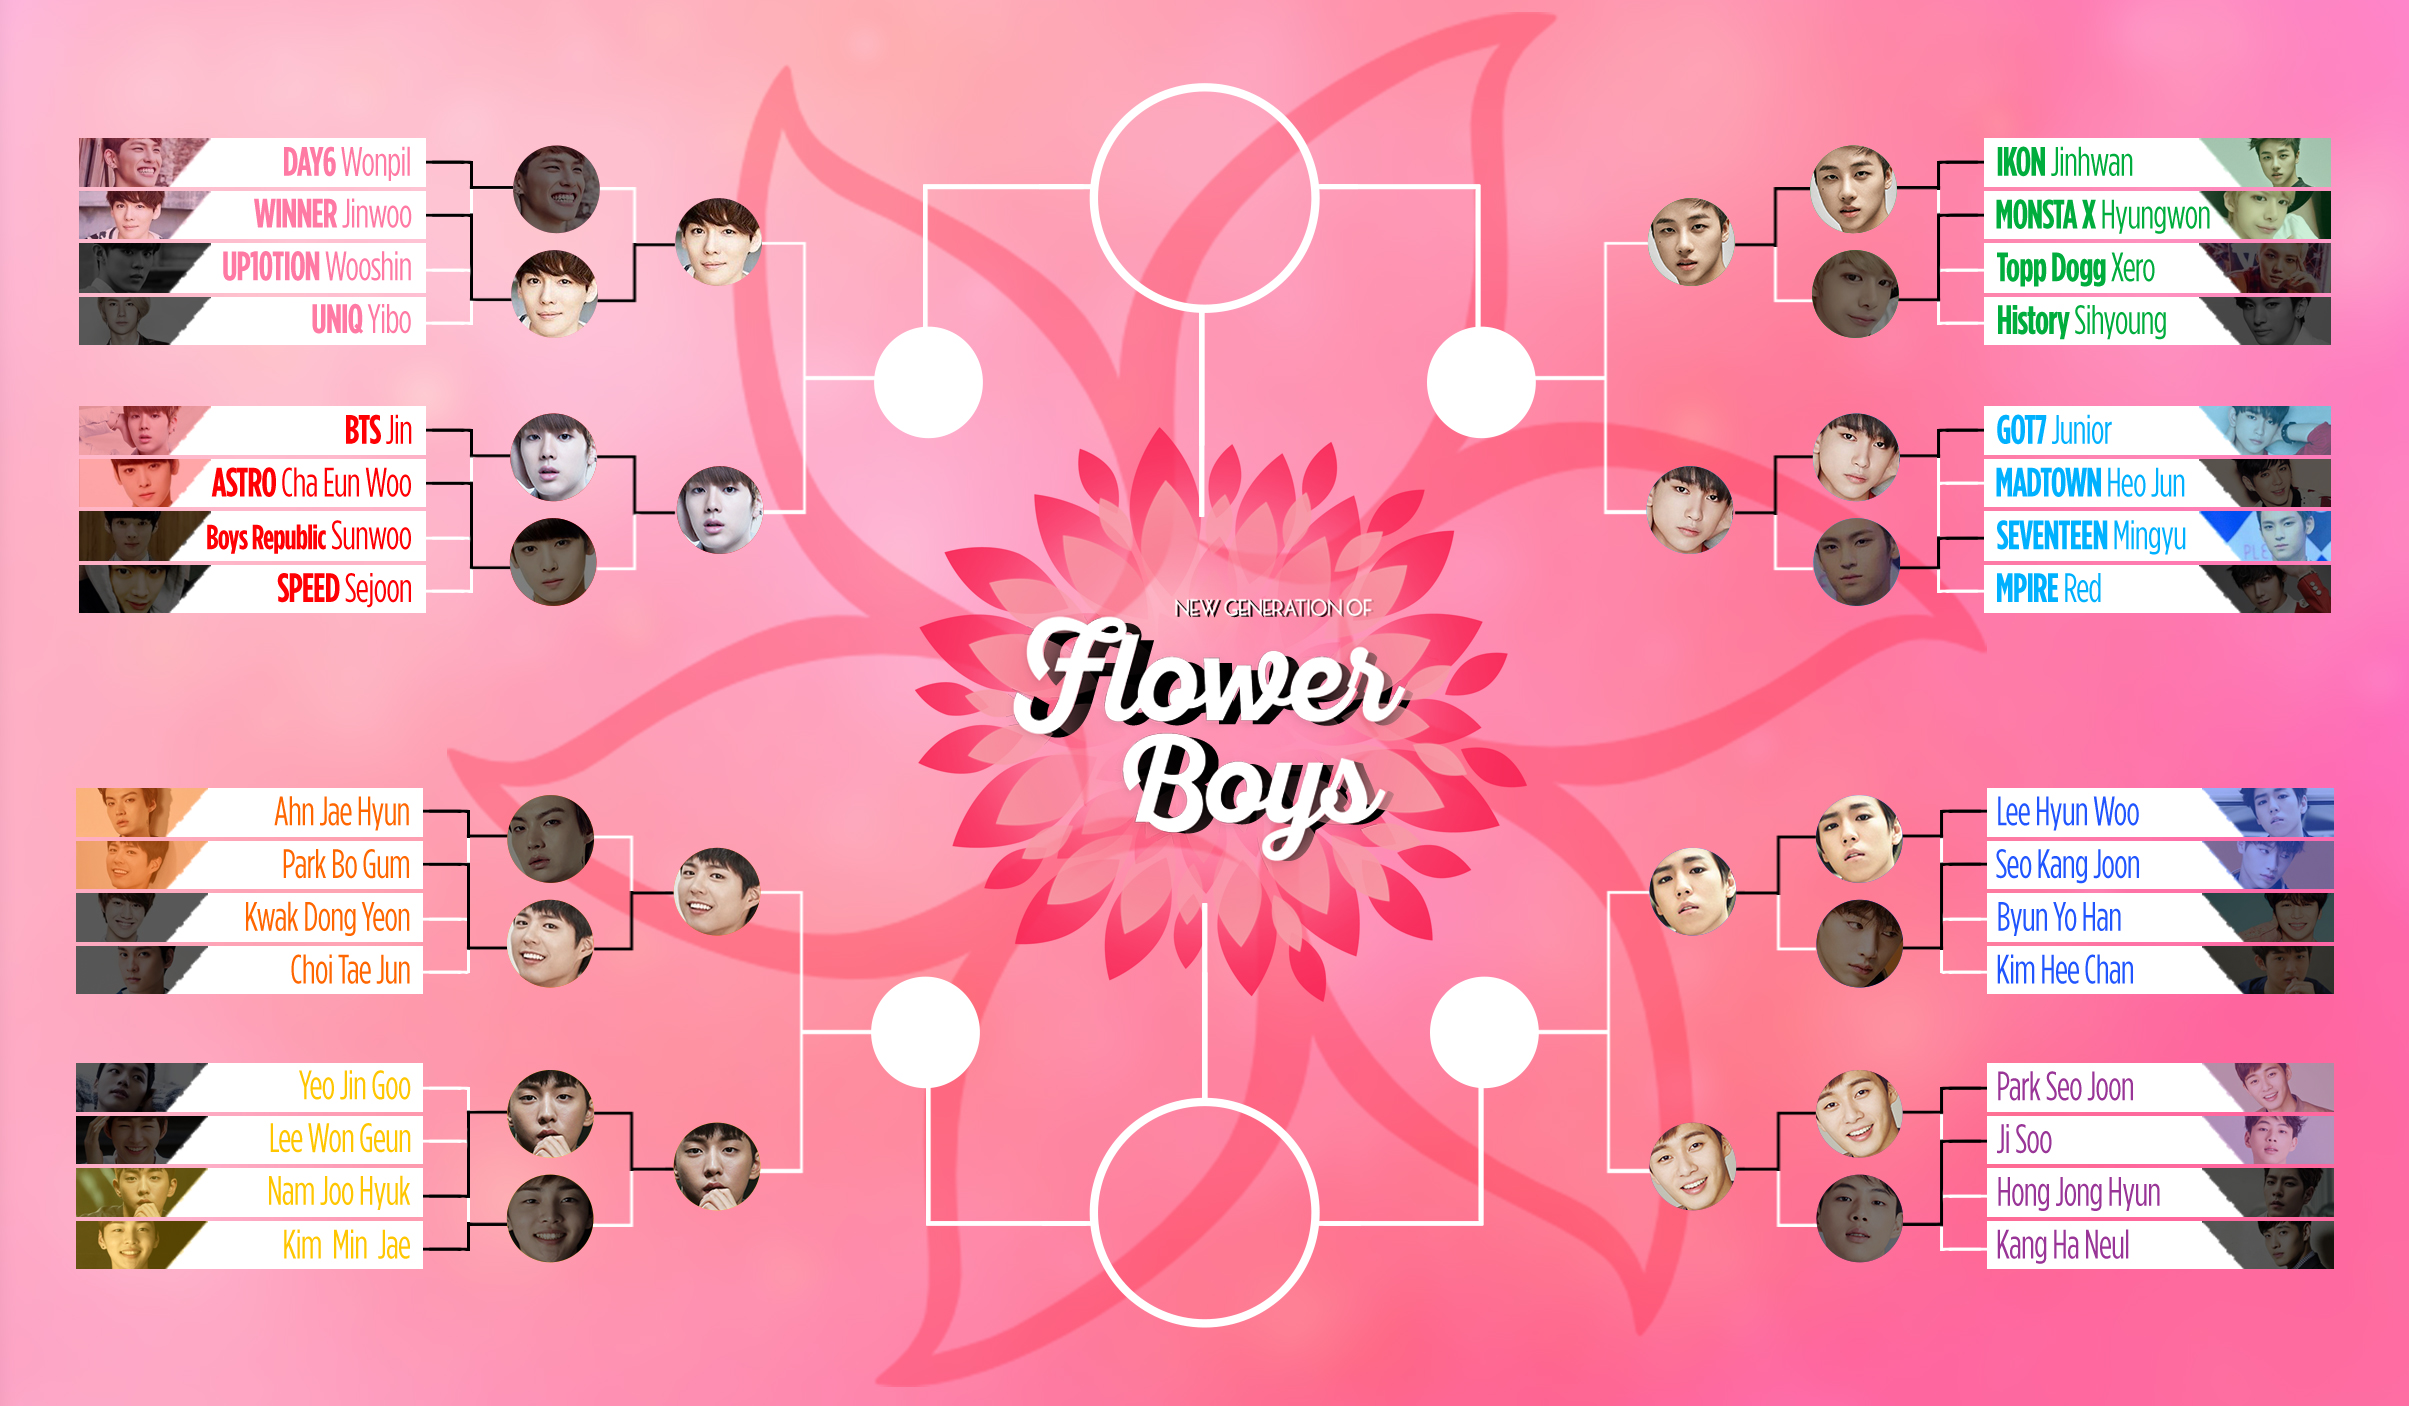 new-generation-flower-boy-round-three-bracket.jpg